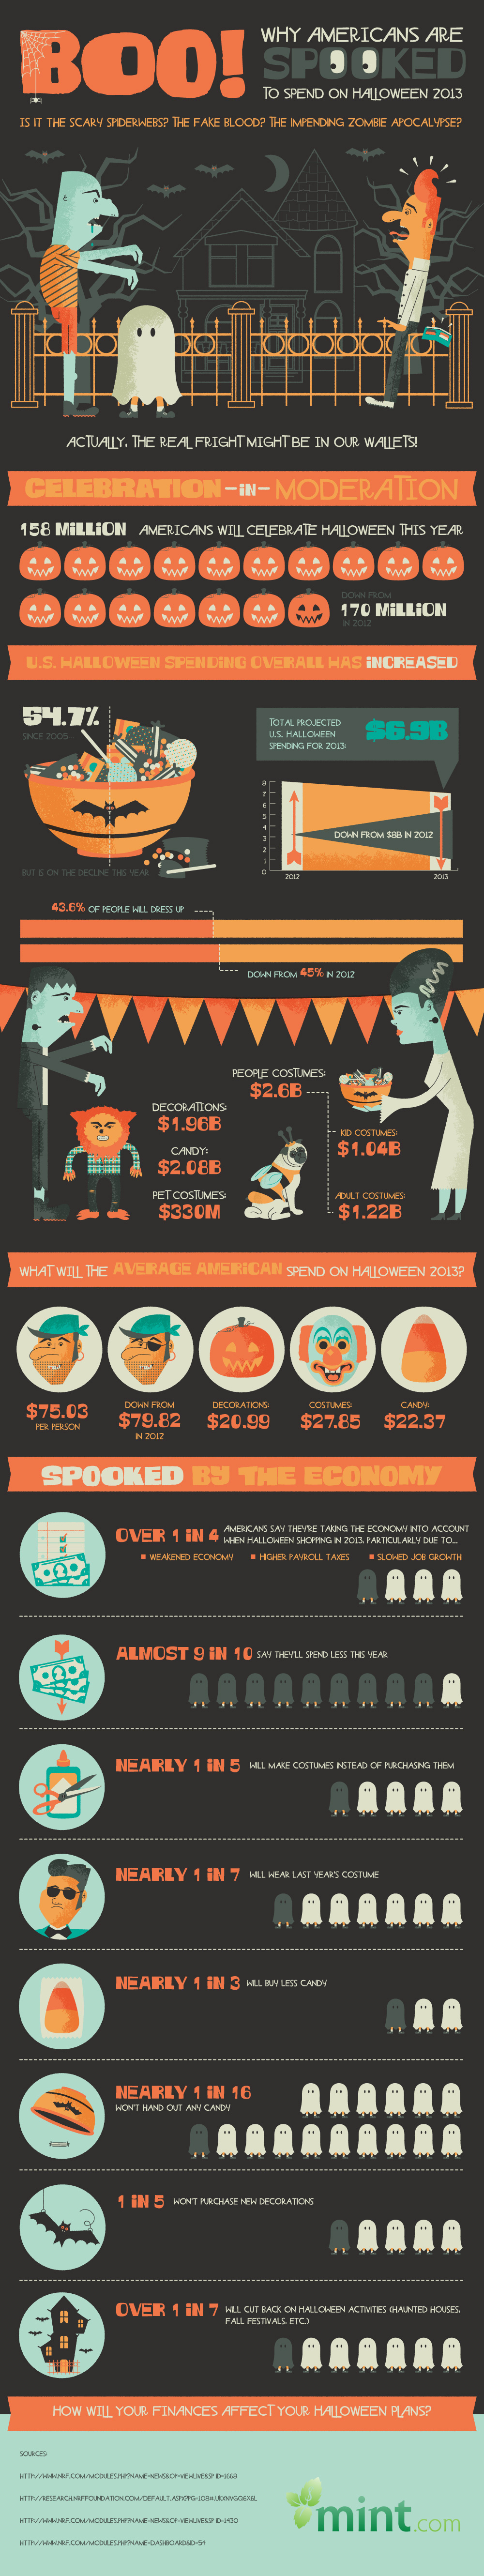 Boo! Why Are Americans Spooked to Spend on Halloween 2013? (infographic)